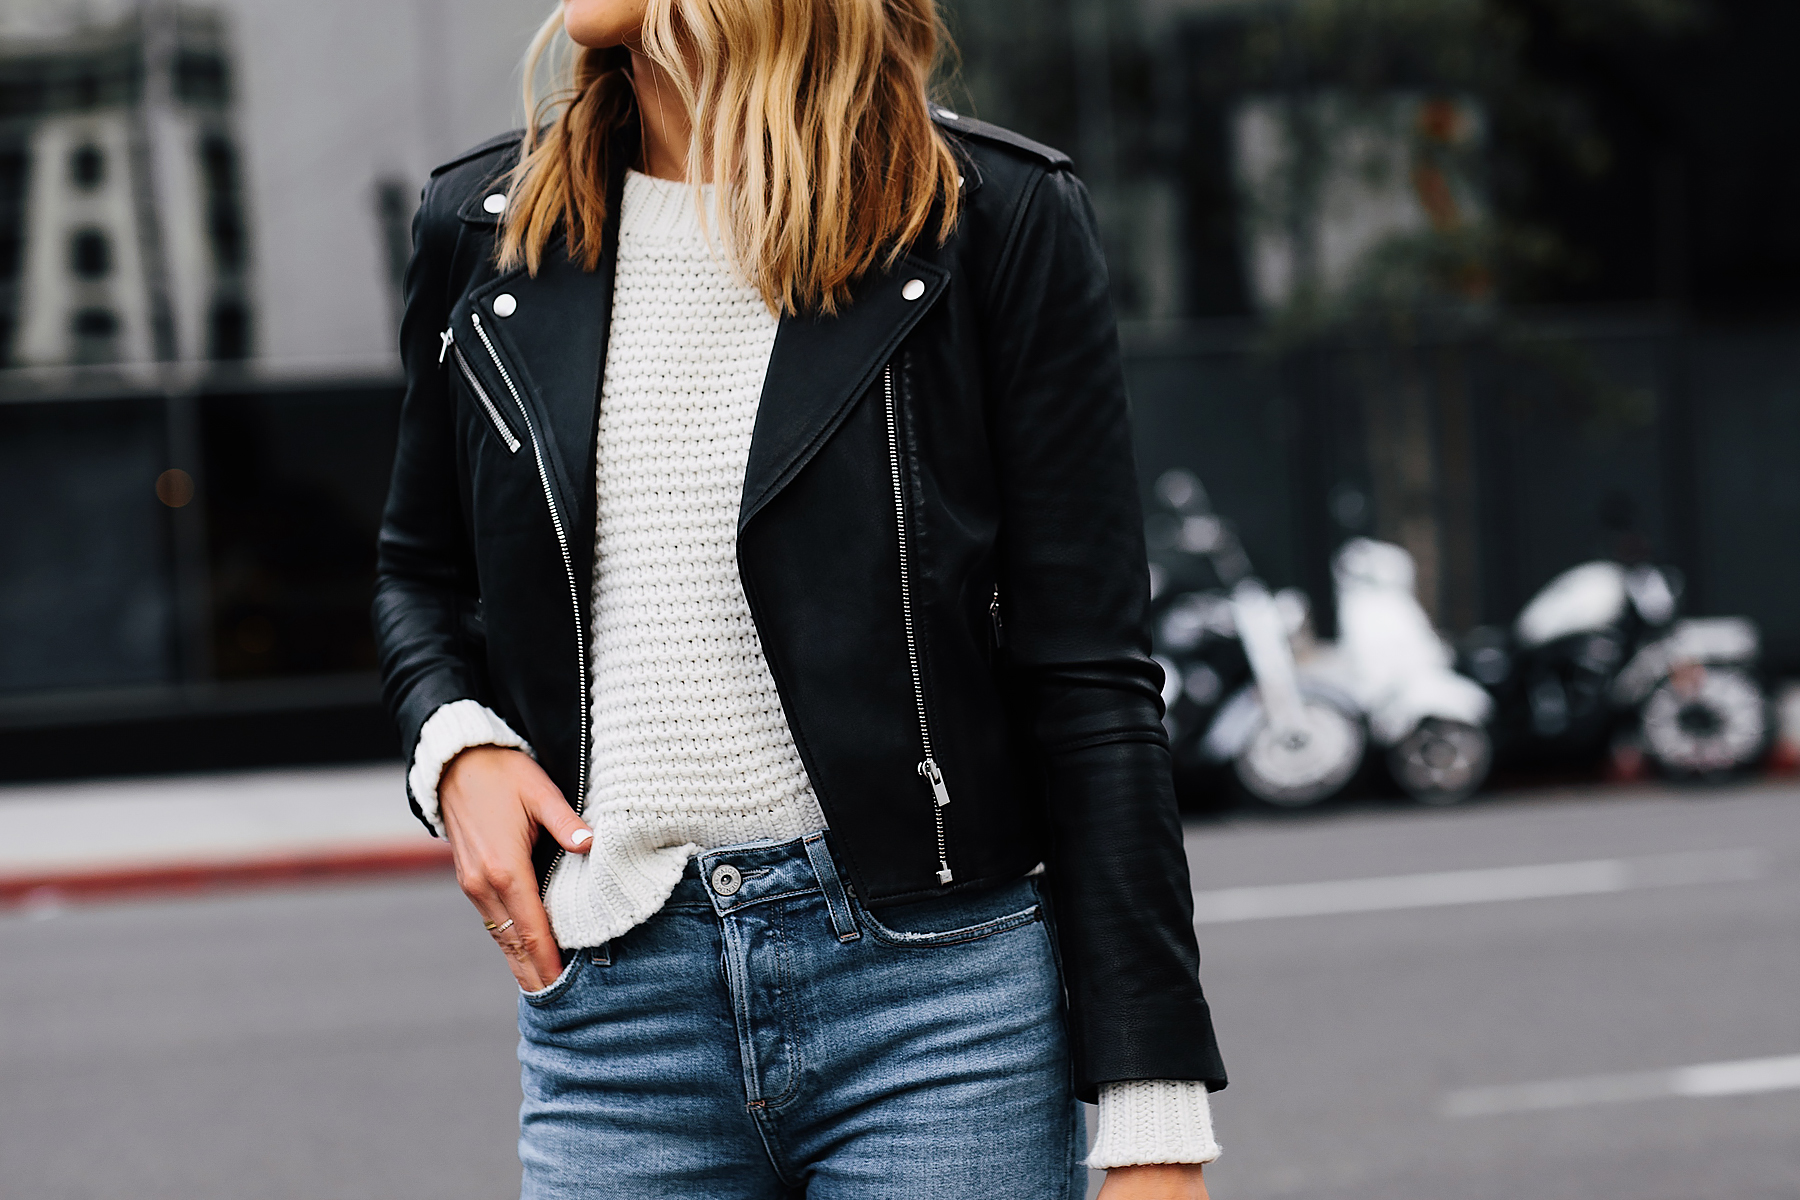 Blonde Woman Wearing Club Monaco Black Leather Jacket Ivory Chunky Sweater Blue Jeans Fashion Jackson San Diego Fashion Blogger Street Style